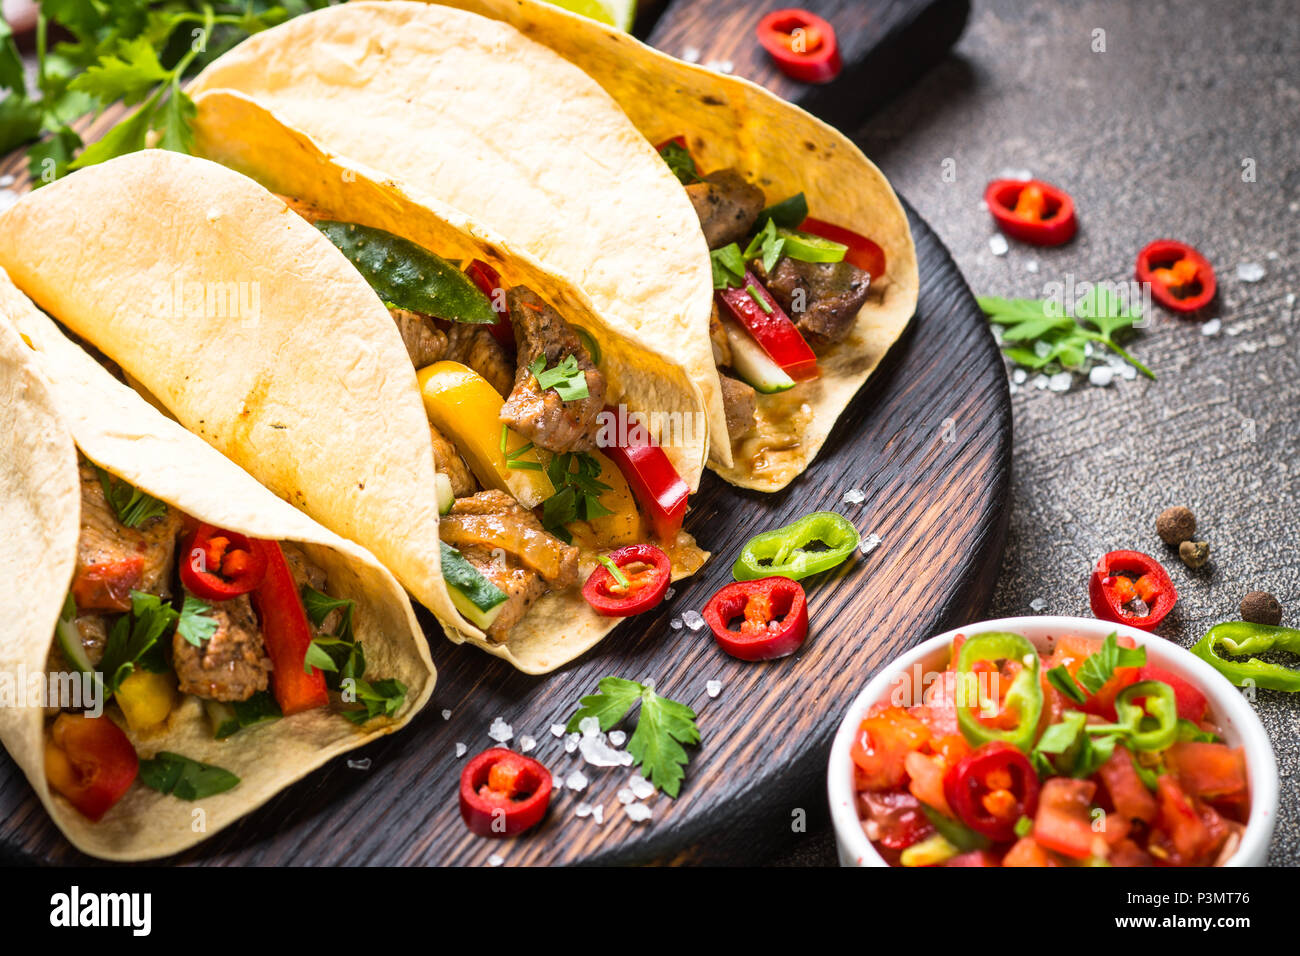 Mexican pork tacos with vegetables and salsa. - Stock Image